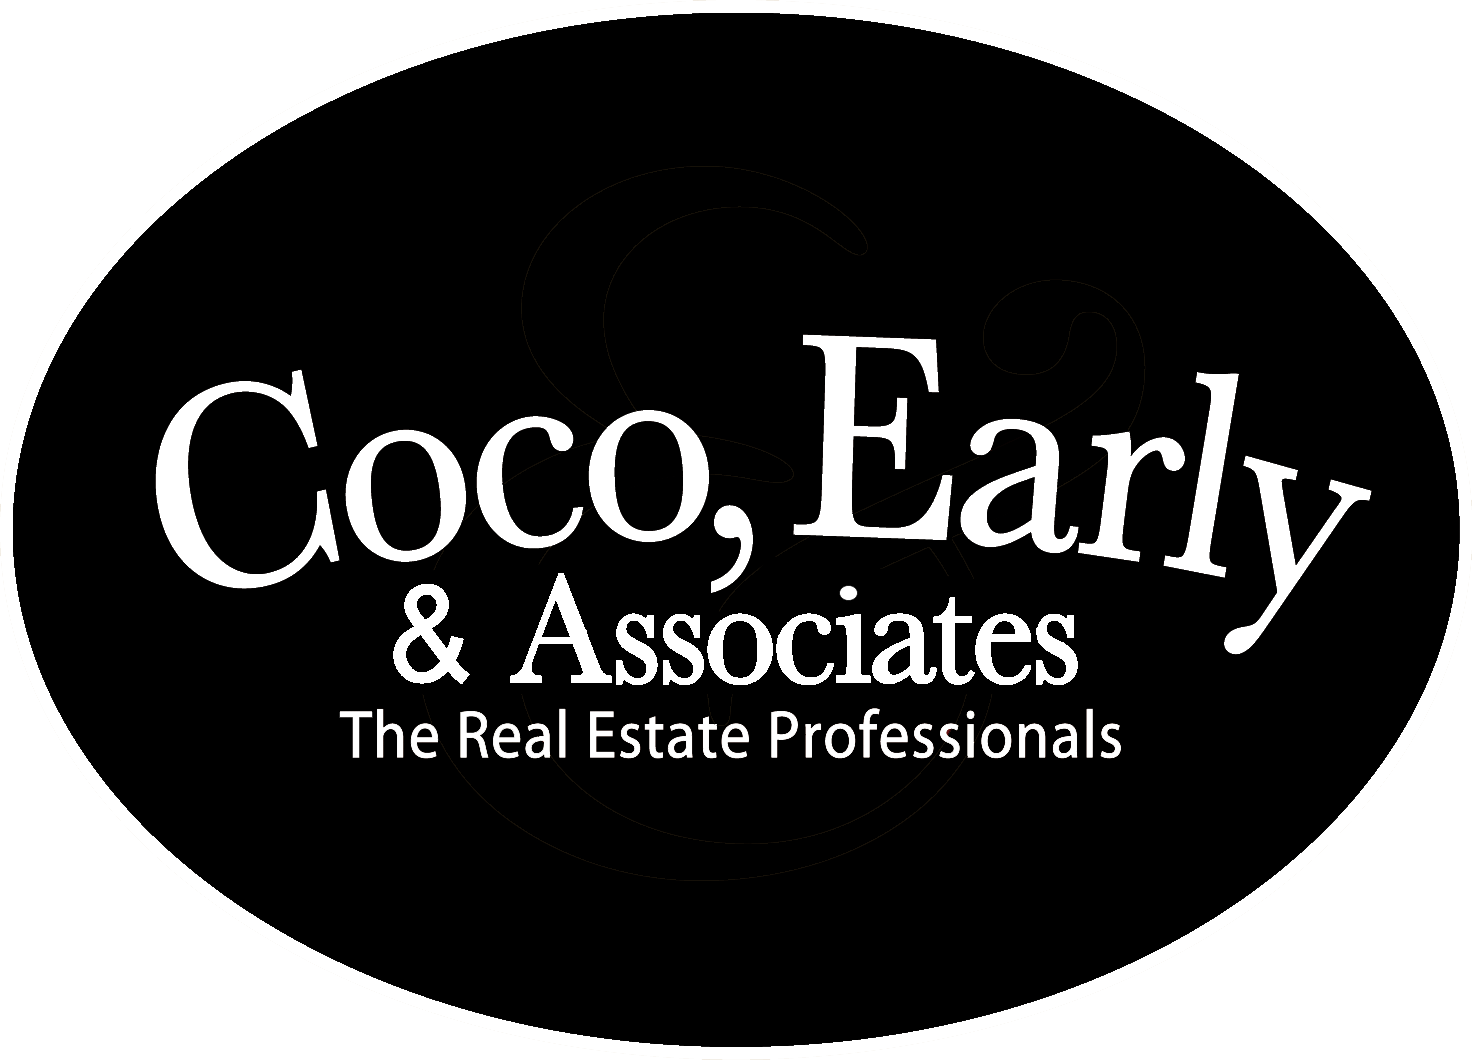 Coco Early & Associates Realty